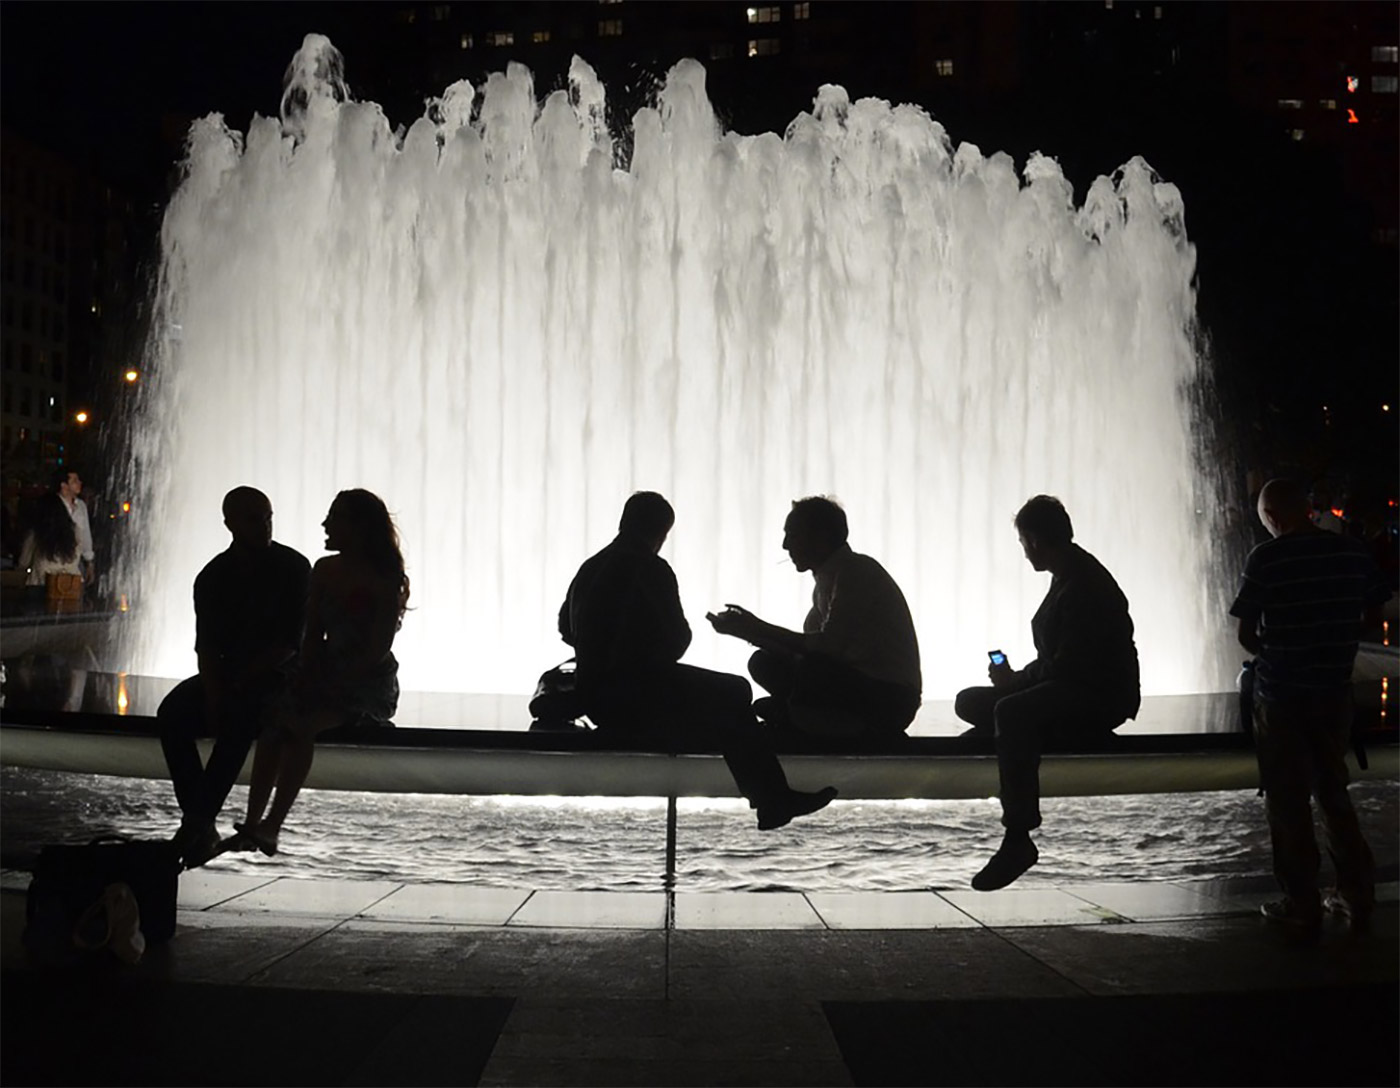 People talking in front of a fountain